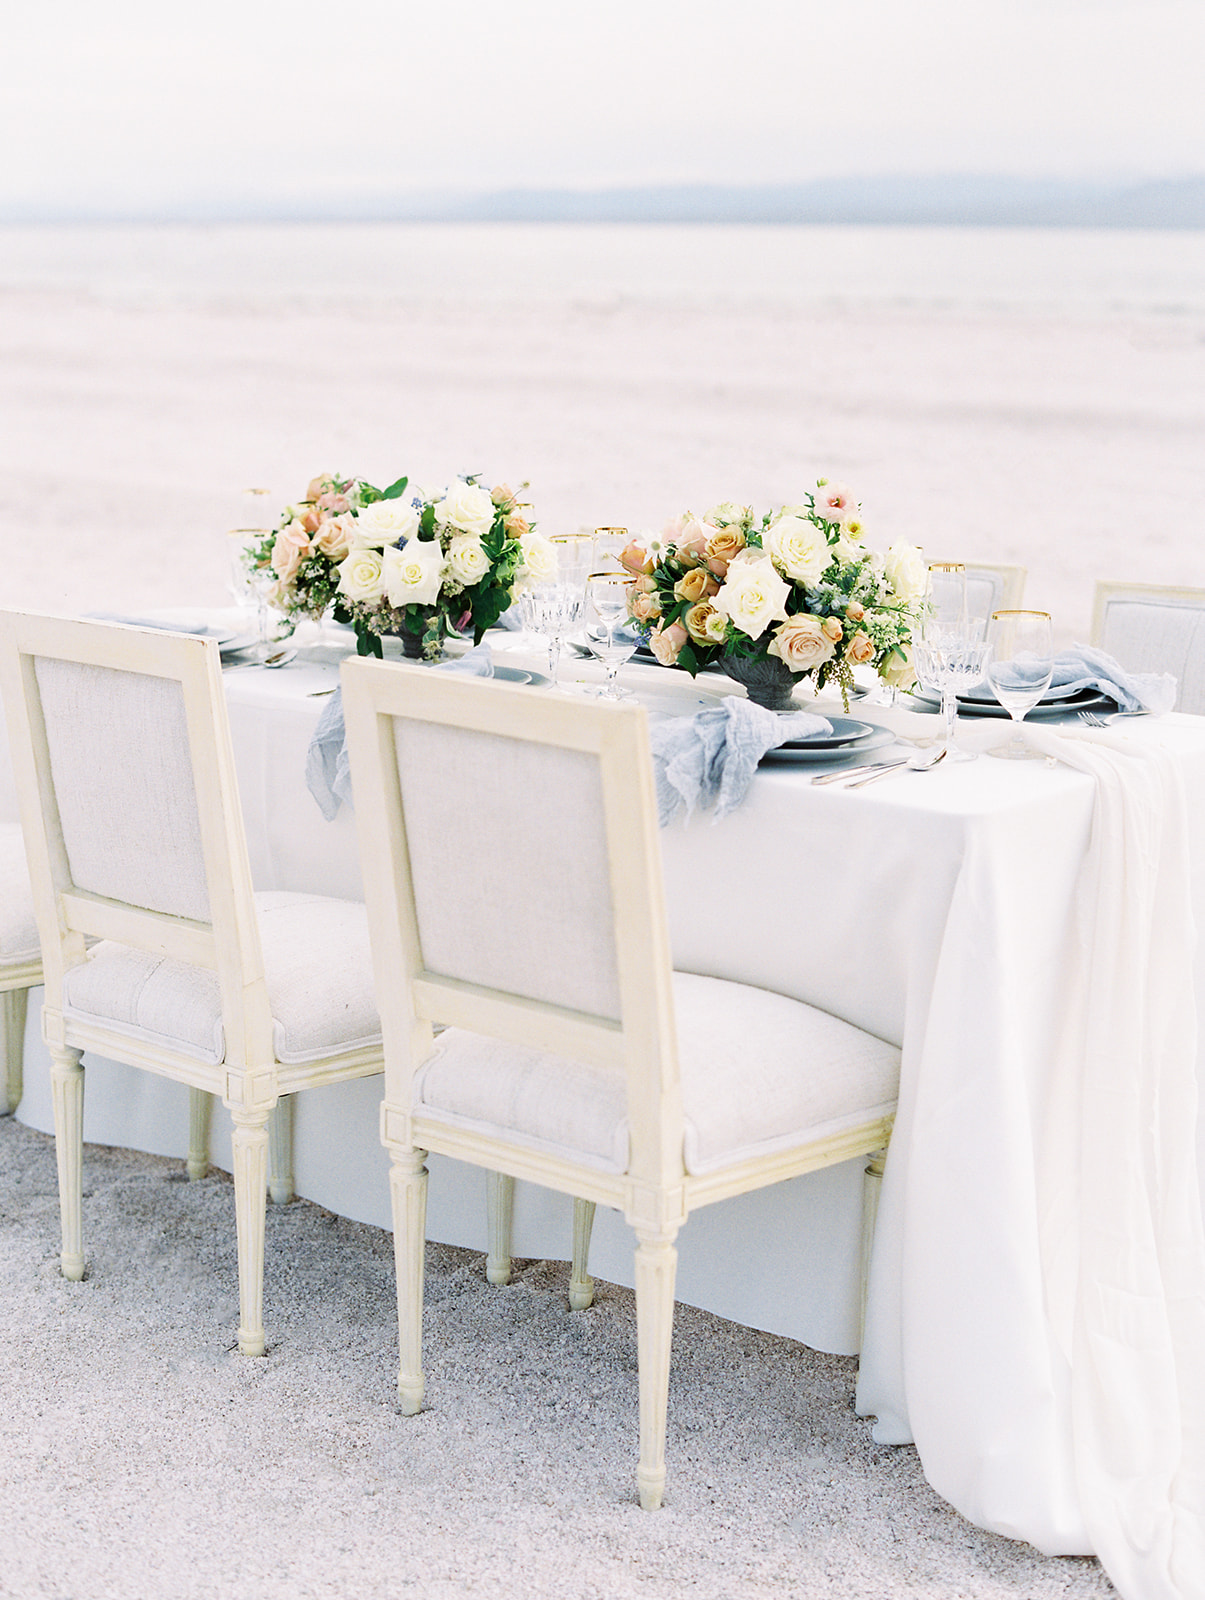 Ethereal Wedding Inspiration with Soft, Neutral Details